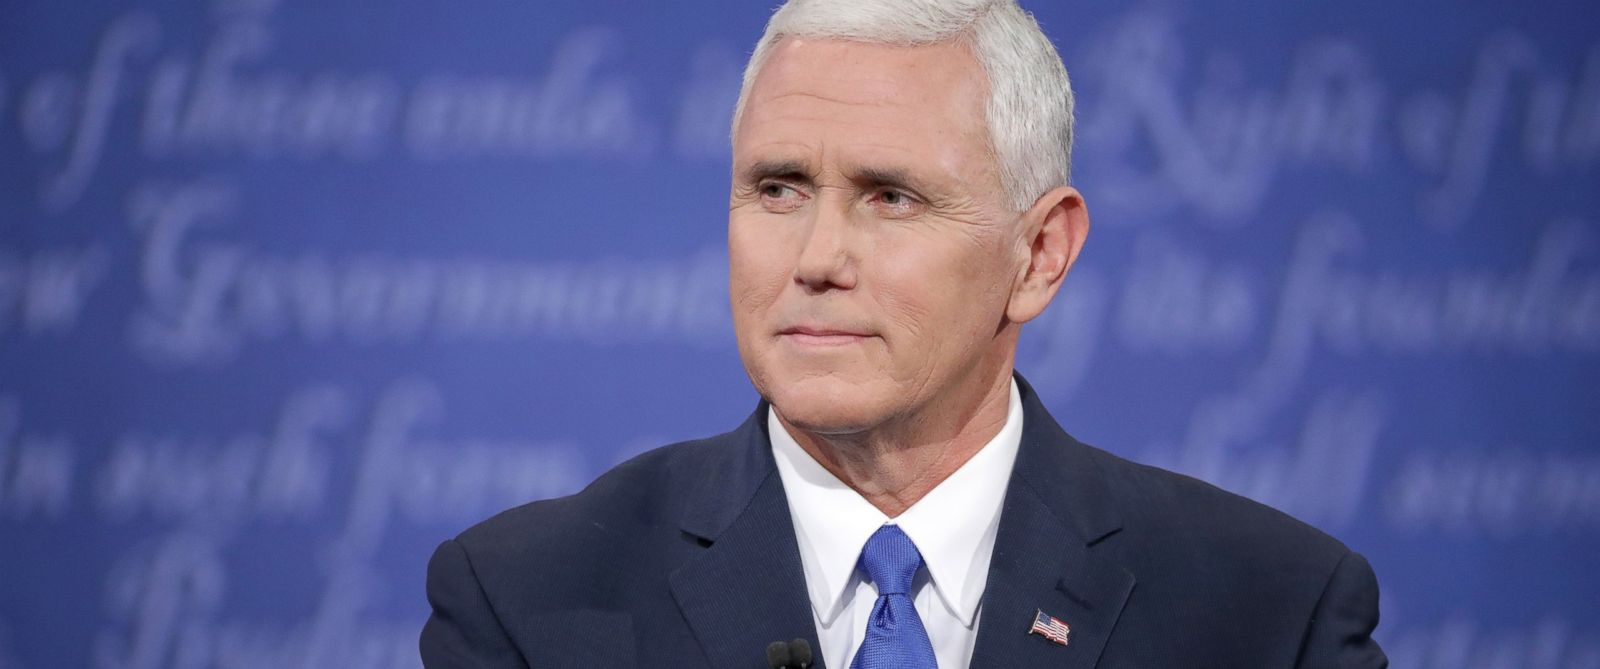 PHOTO: In this file photo, Republican vice presidential nominee Mike Pence is pictured during the Vice Presidential Debate with Democratic vice presidential nominee Tim Kaine at Longwood University, Oct. 4, 2016 in Farmville, Virginia.